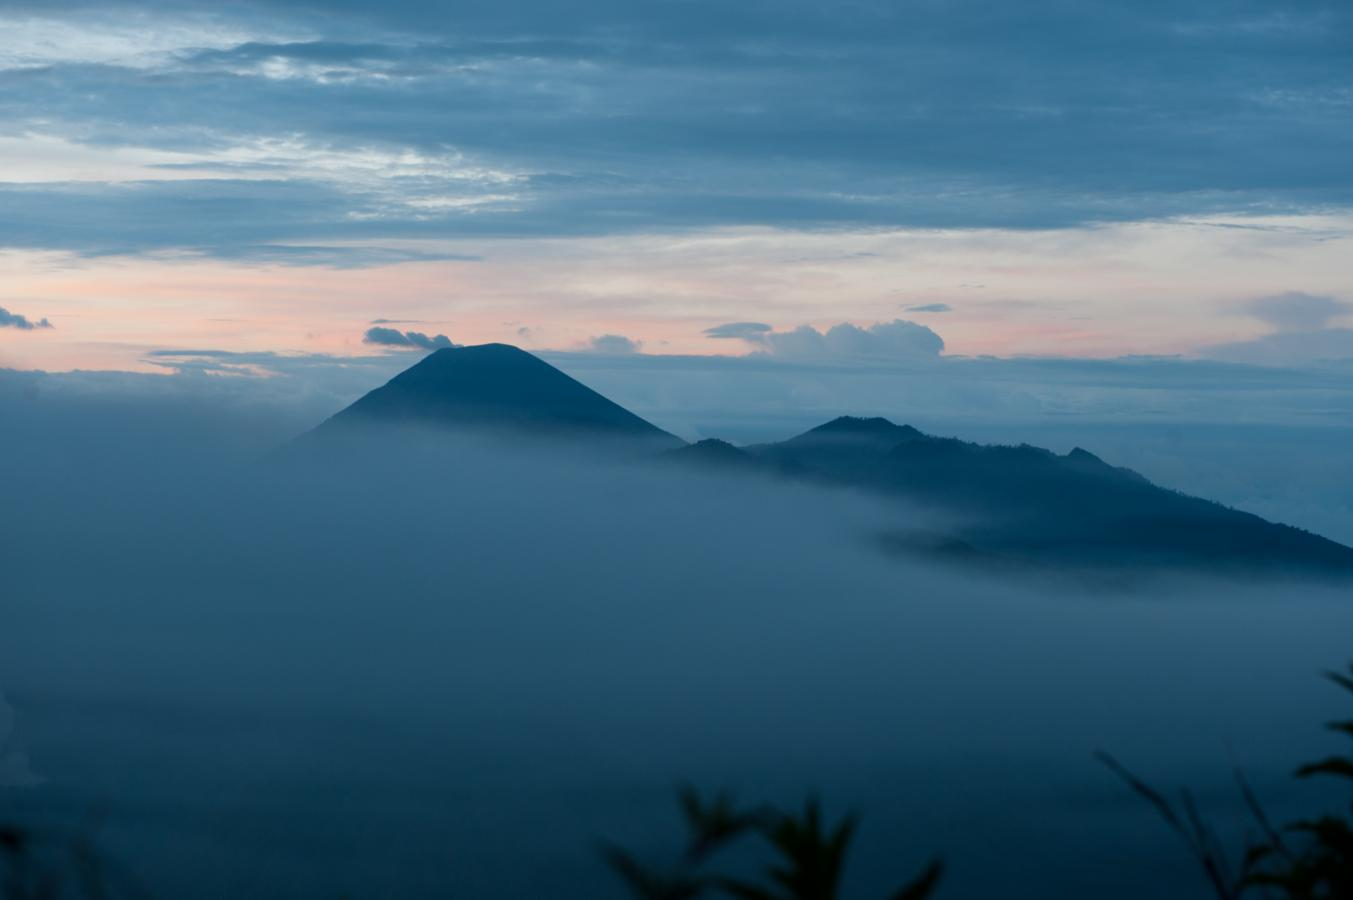 sunrise-at-the-bromo-volcano-java-2010